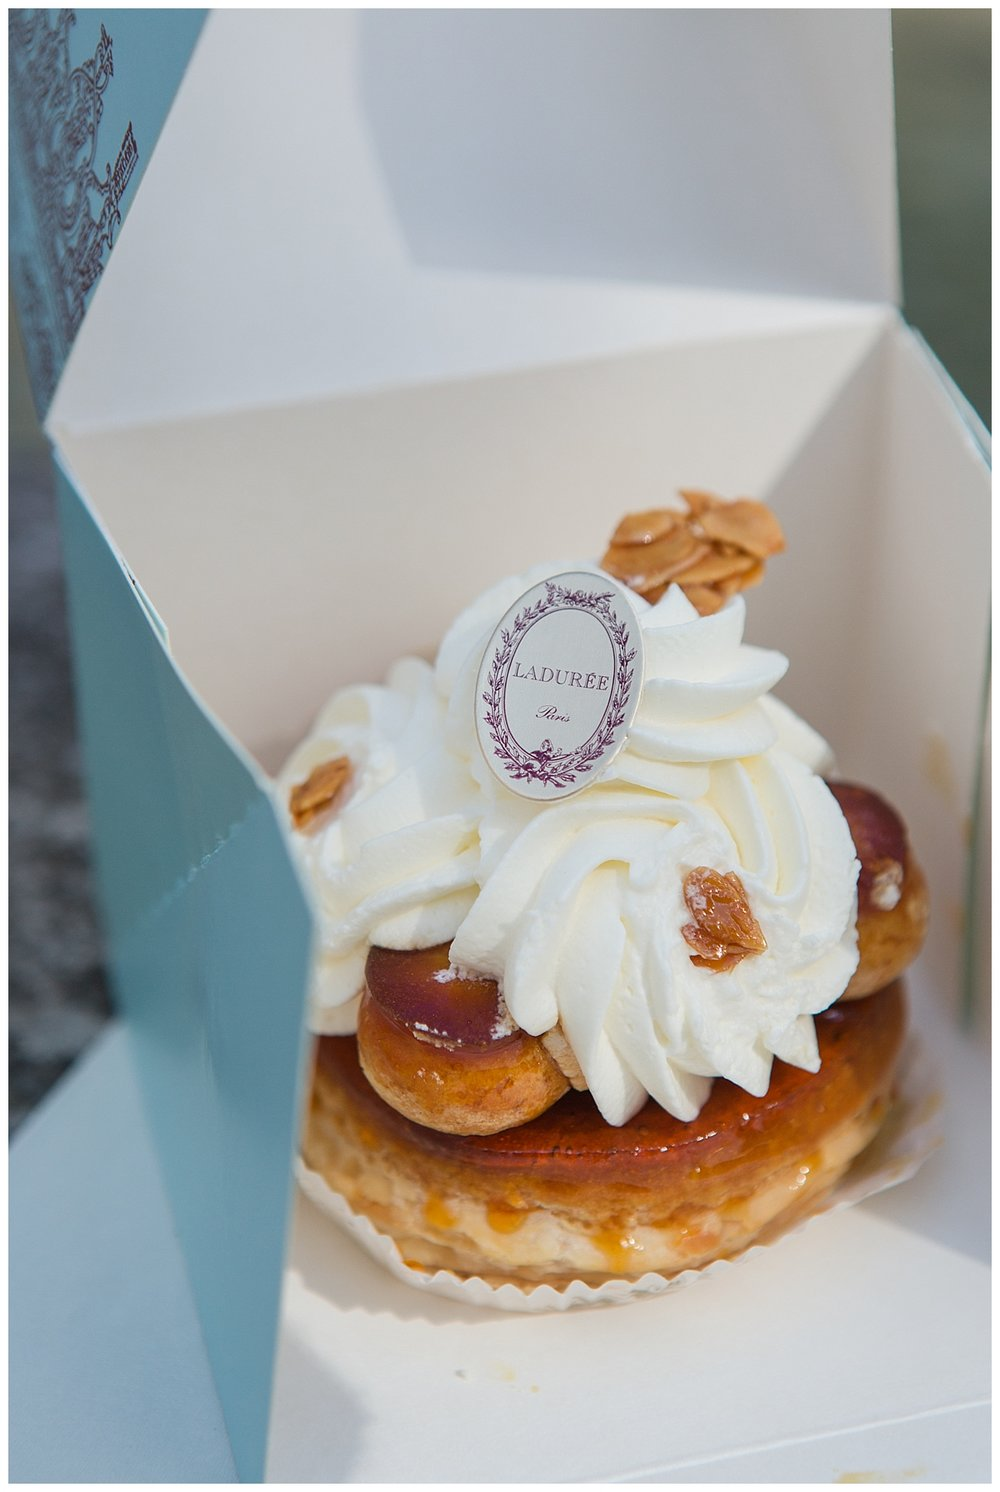 A delicious and fancy Laudree cream puff before I consumed it in its entirety!